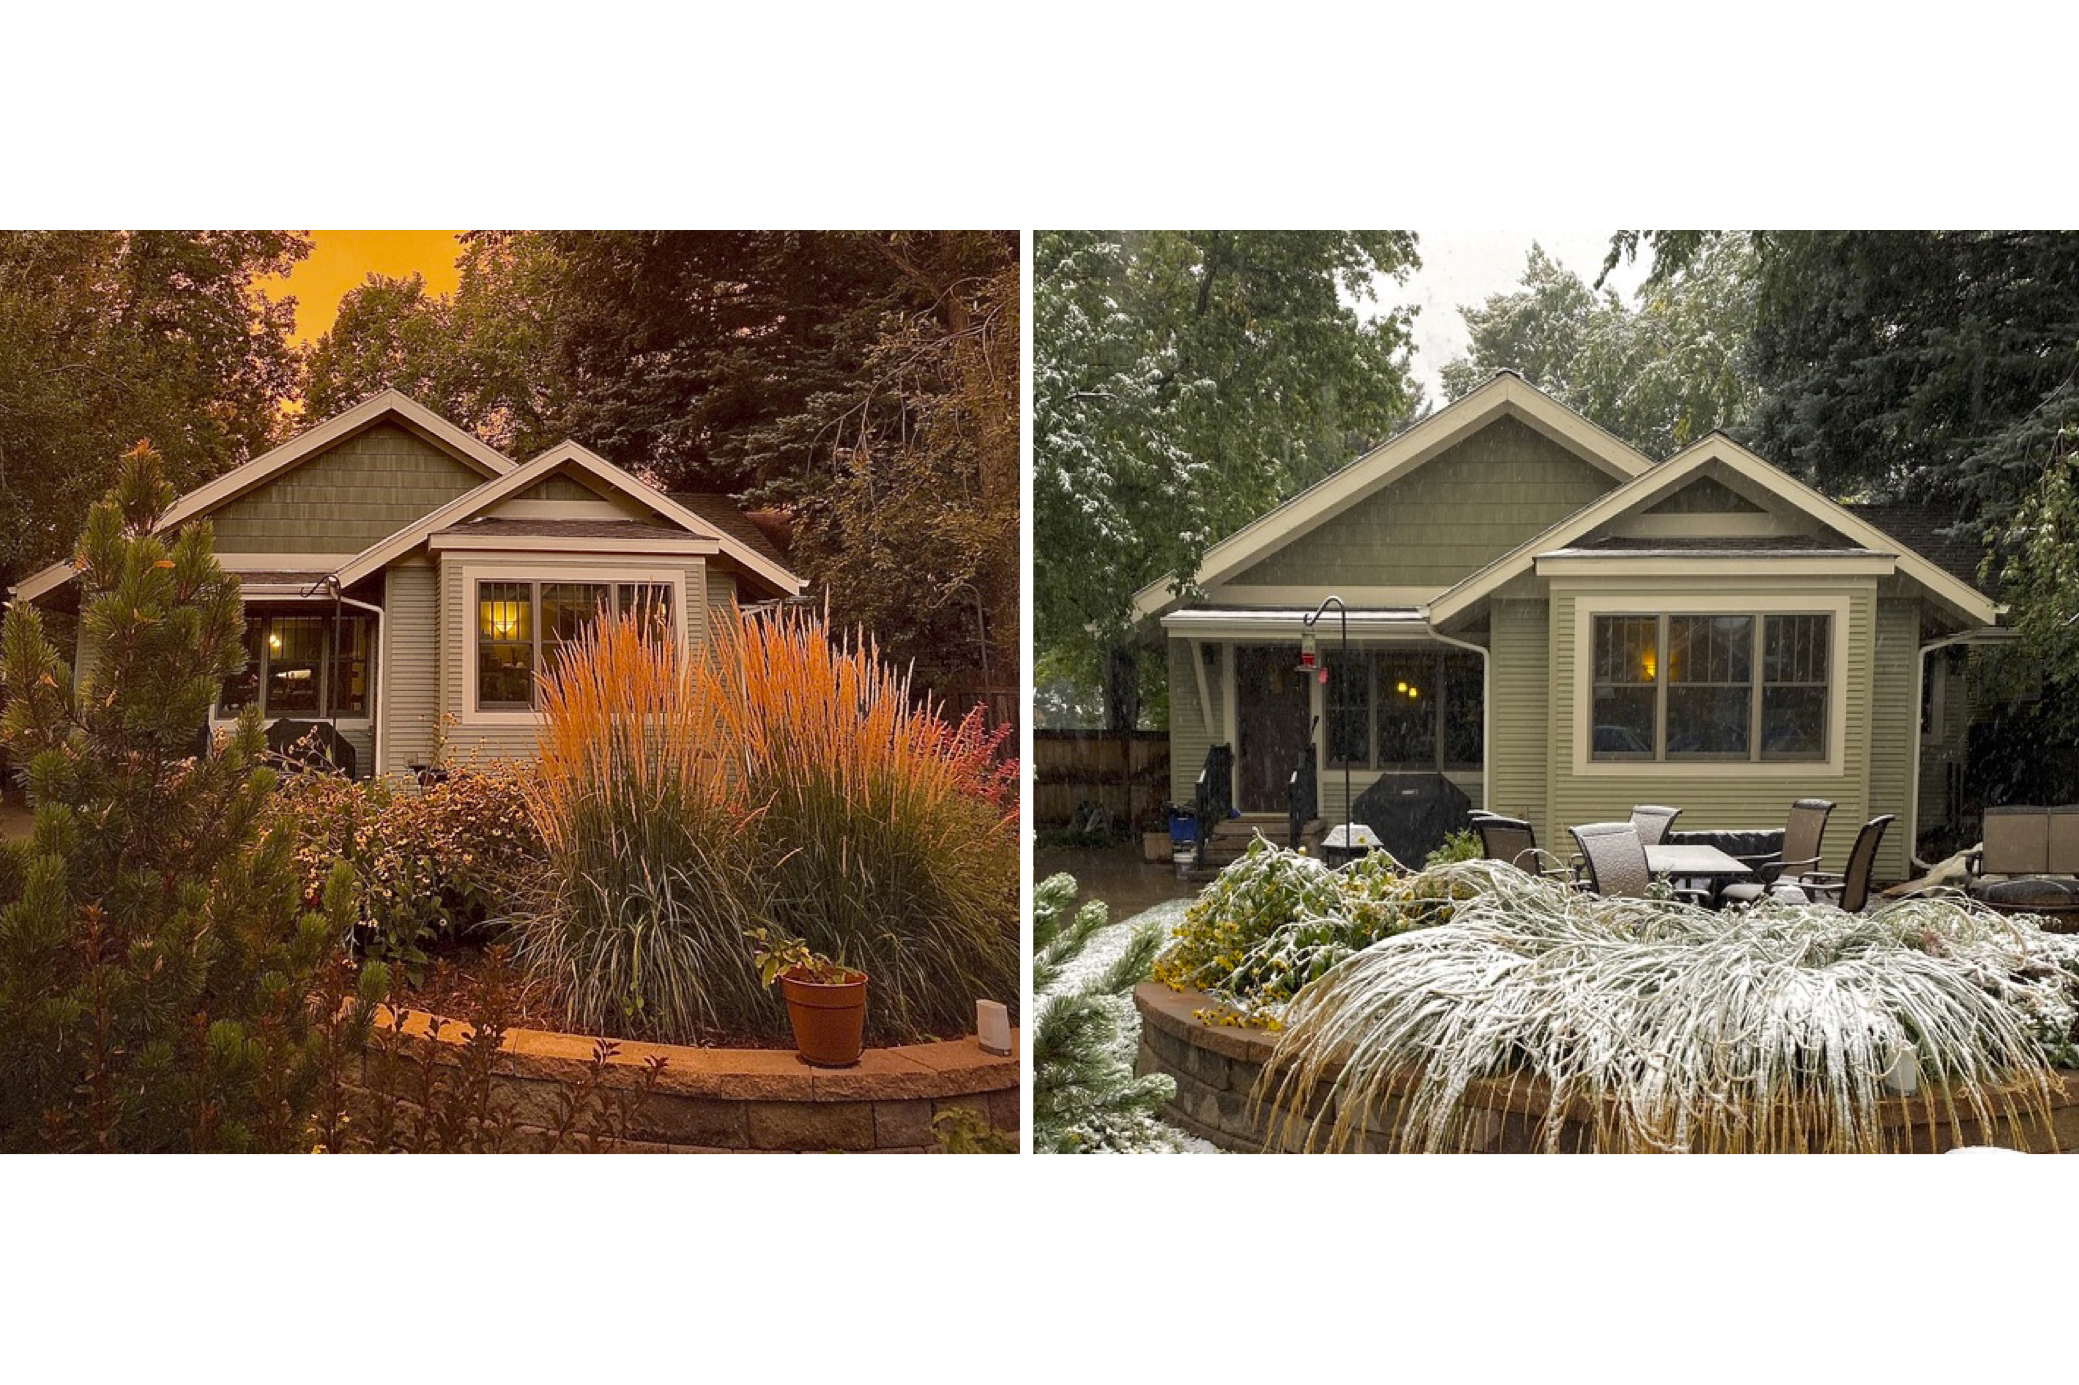 Orange skies from fire and smoke, the day before snow fell on Fort Collins on Sept. 8, 2020. This before-and-after backyard shot was taken by Colorado State University professor Scott Denning.